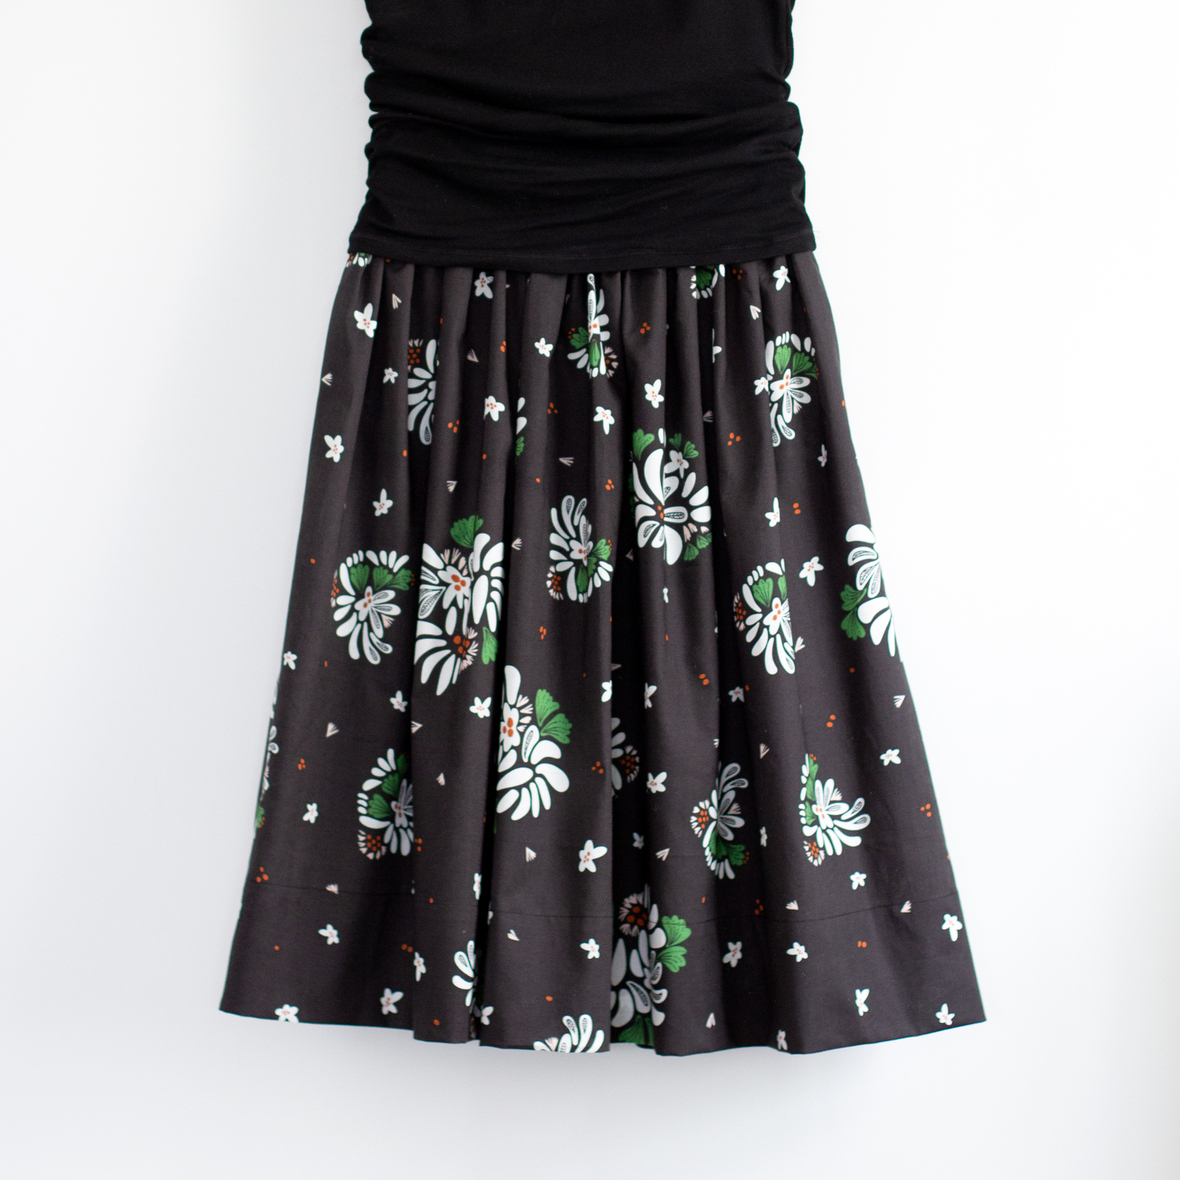 fanciful-black-skirt-site